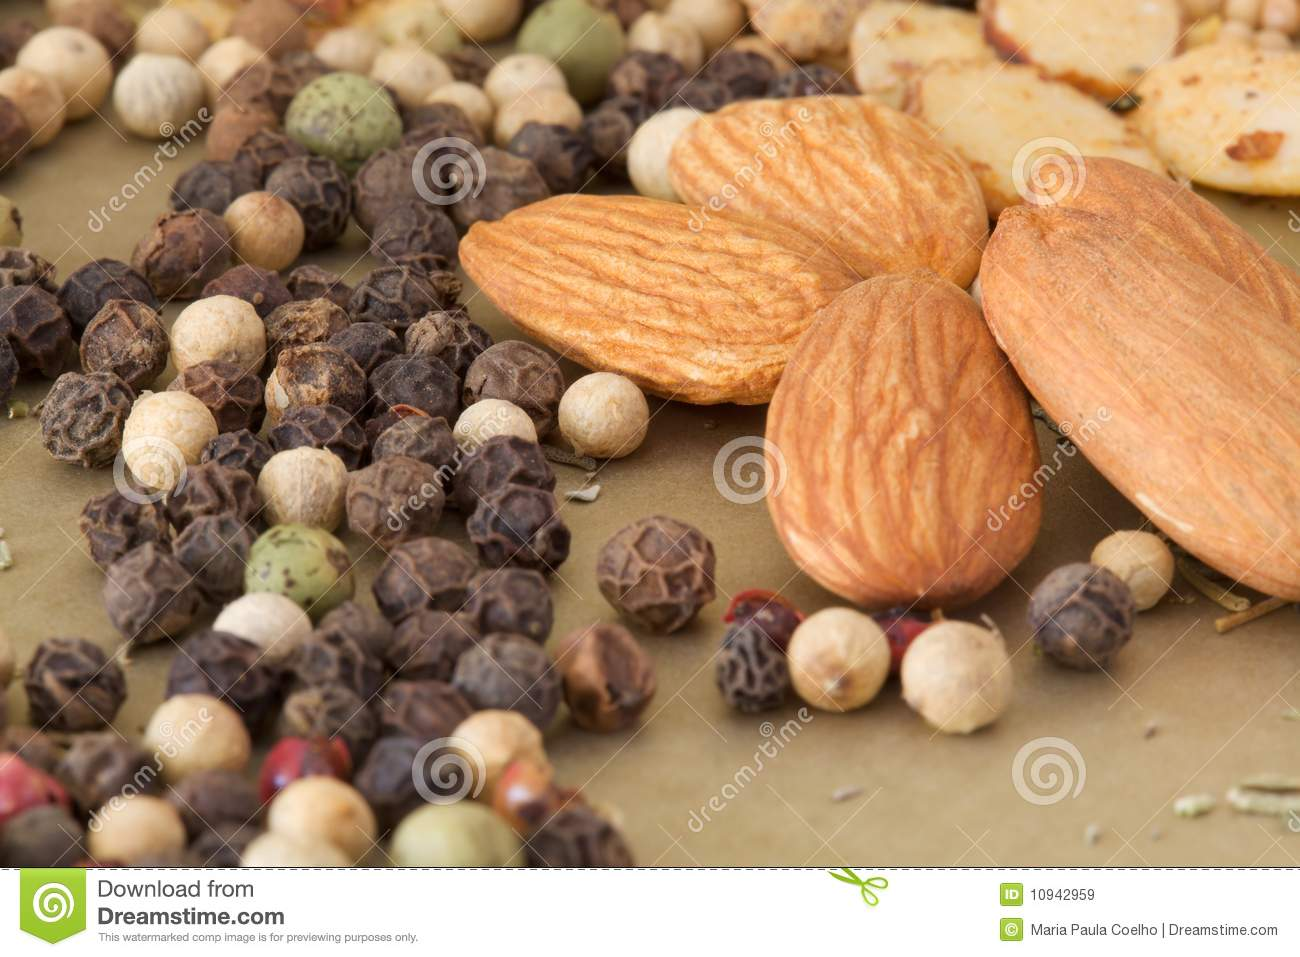 Nuts and spices